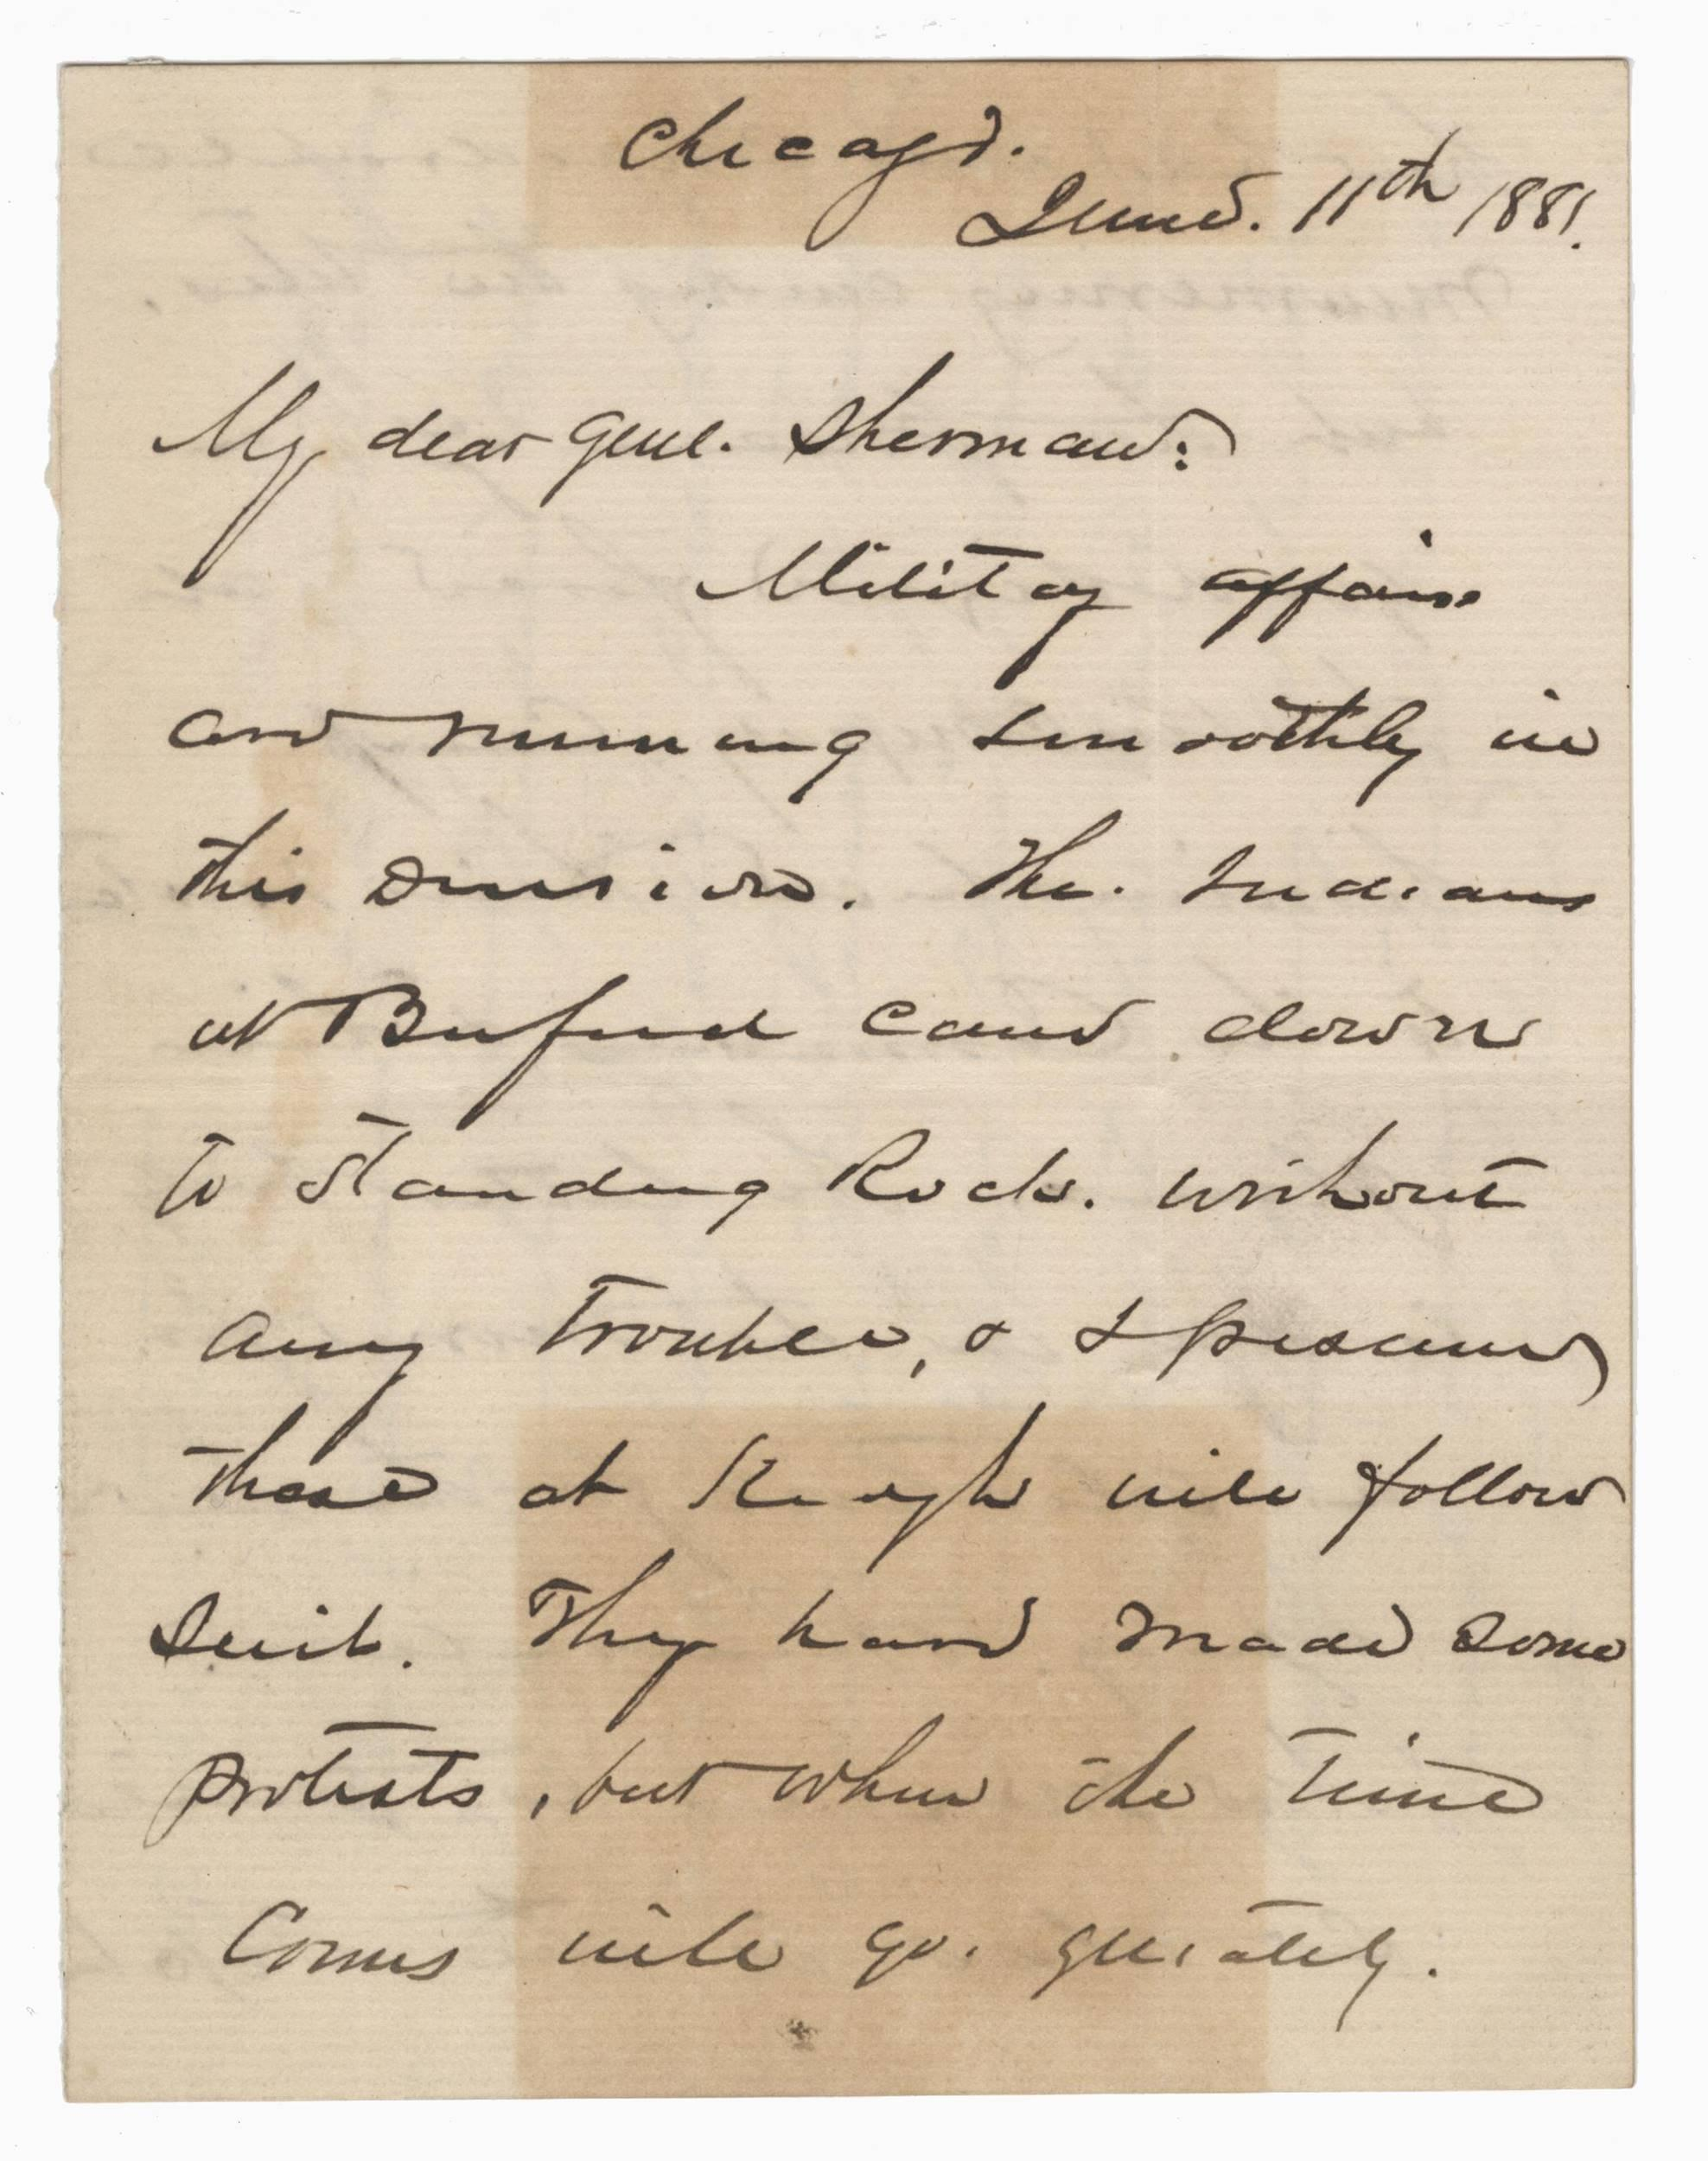 Sheridan ALS to Sherman Re: Indian Protests & Forced Removal